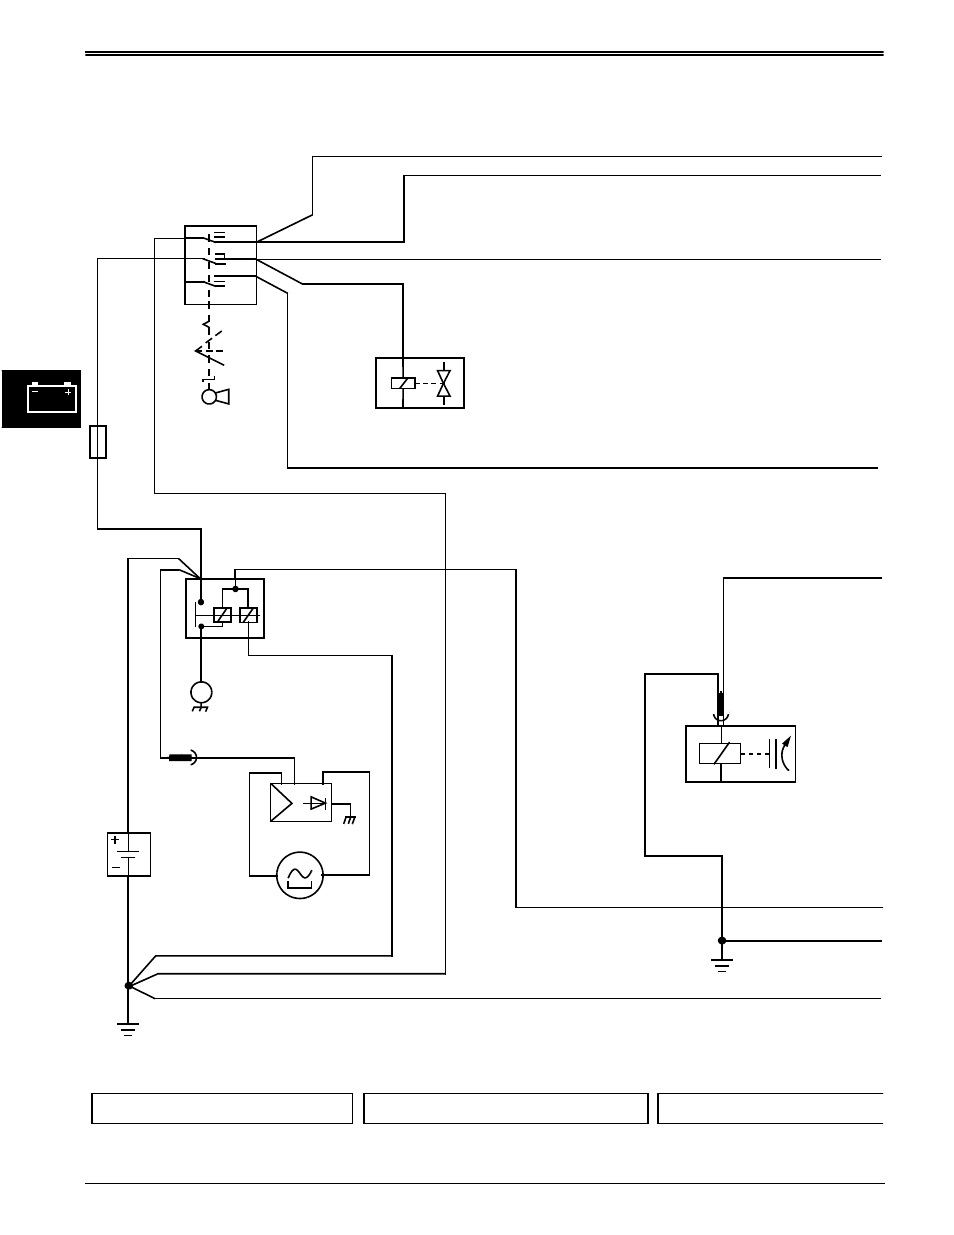 Stx 38 Wiring Diagram - D104 Not Amplified Wiring Diagram -  7gen-nissaan.los-dodol.jeanjaures37.frWiring Diagram